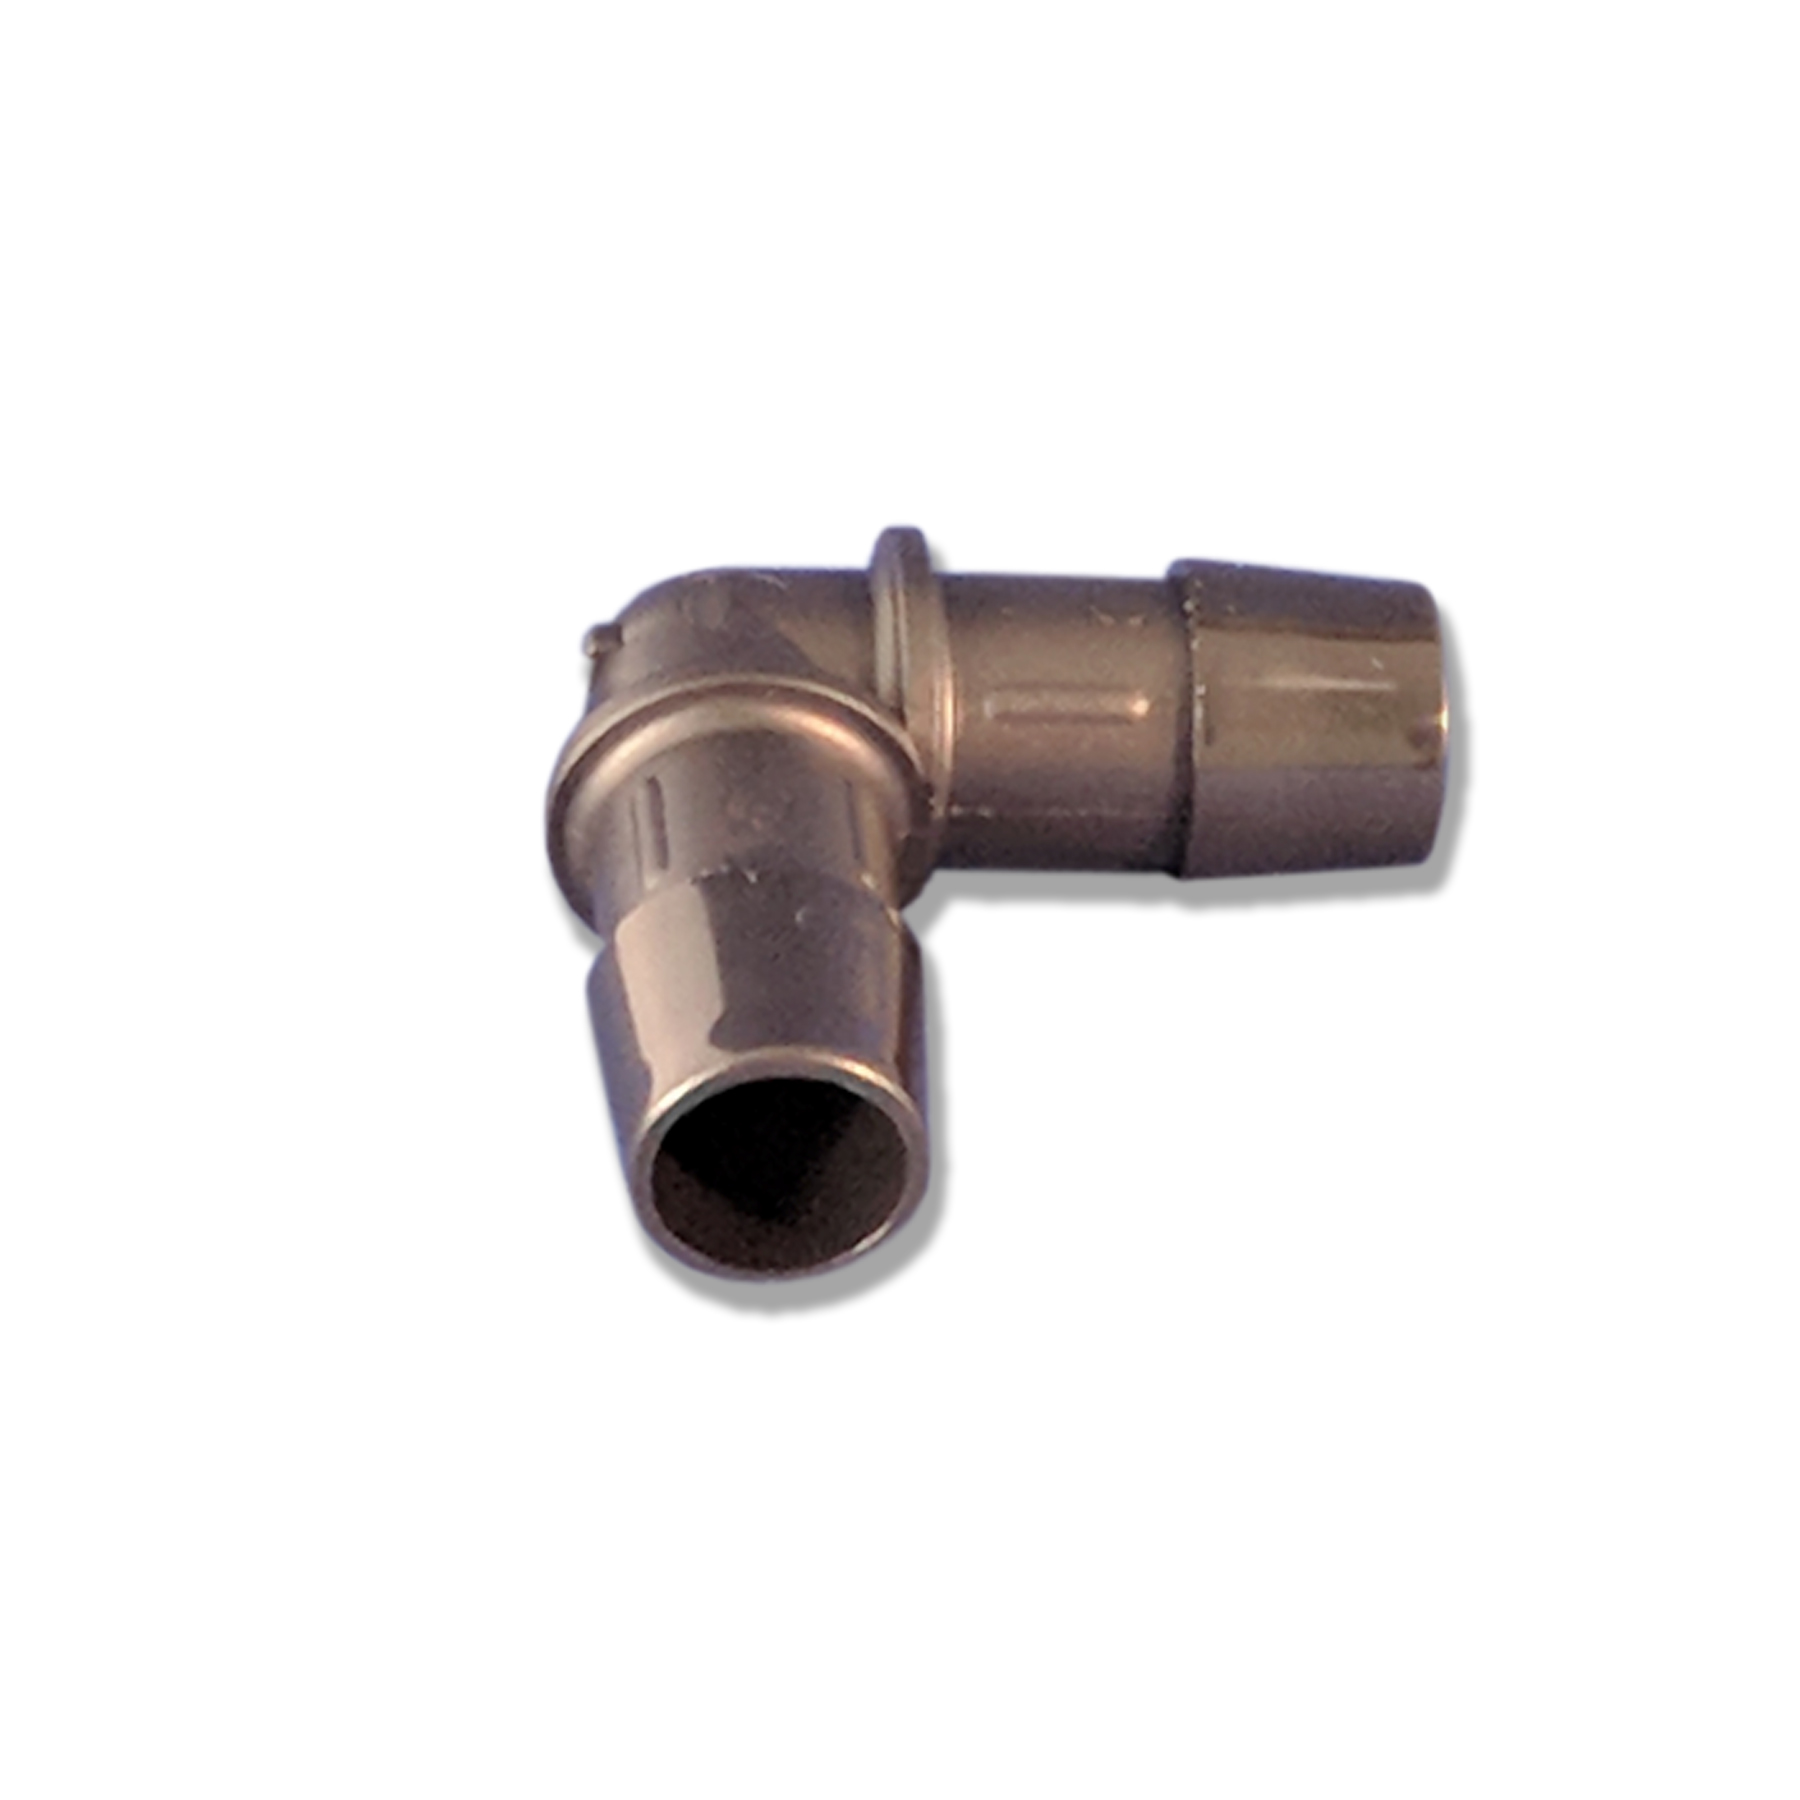 90 Degree Hose Elbow w/ 5/8 in. Barb